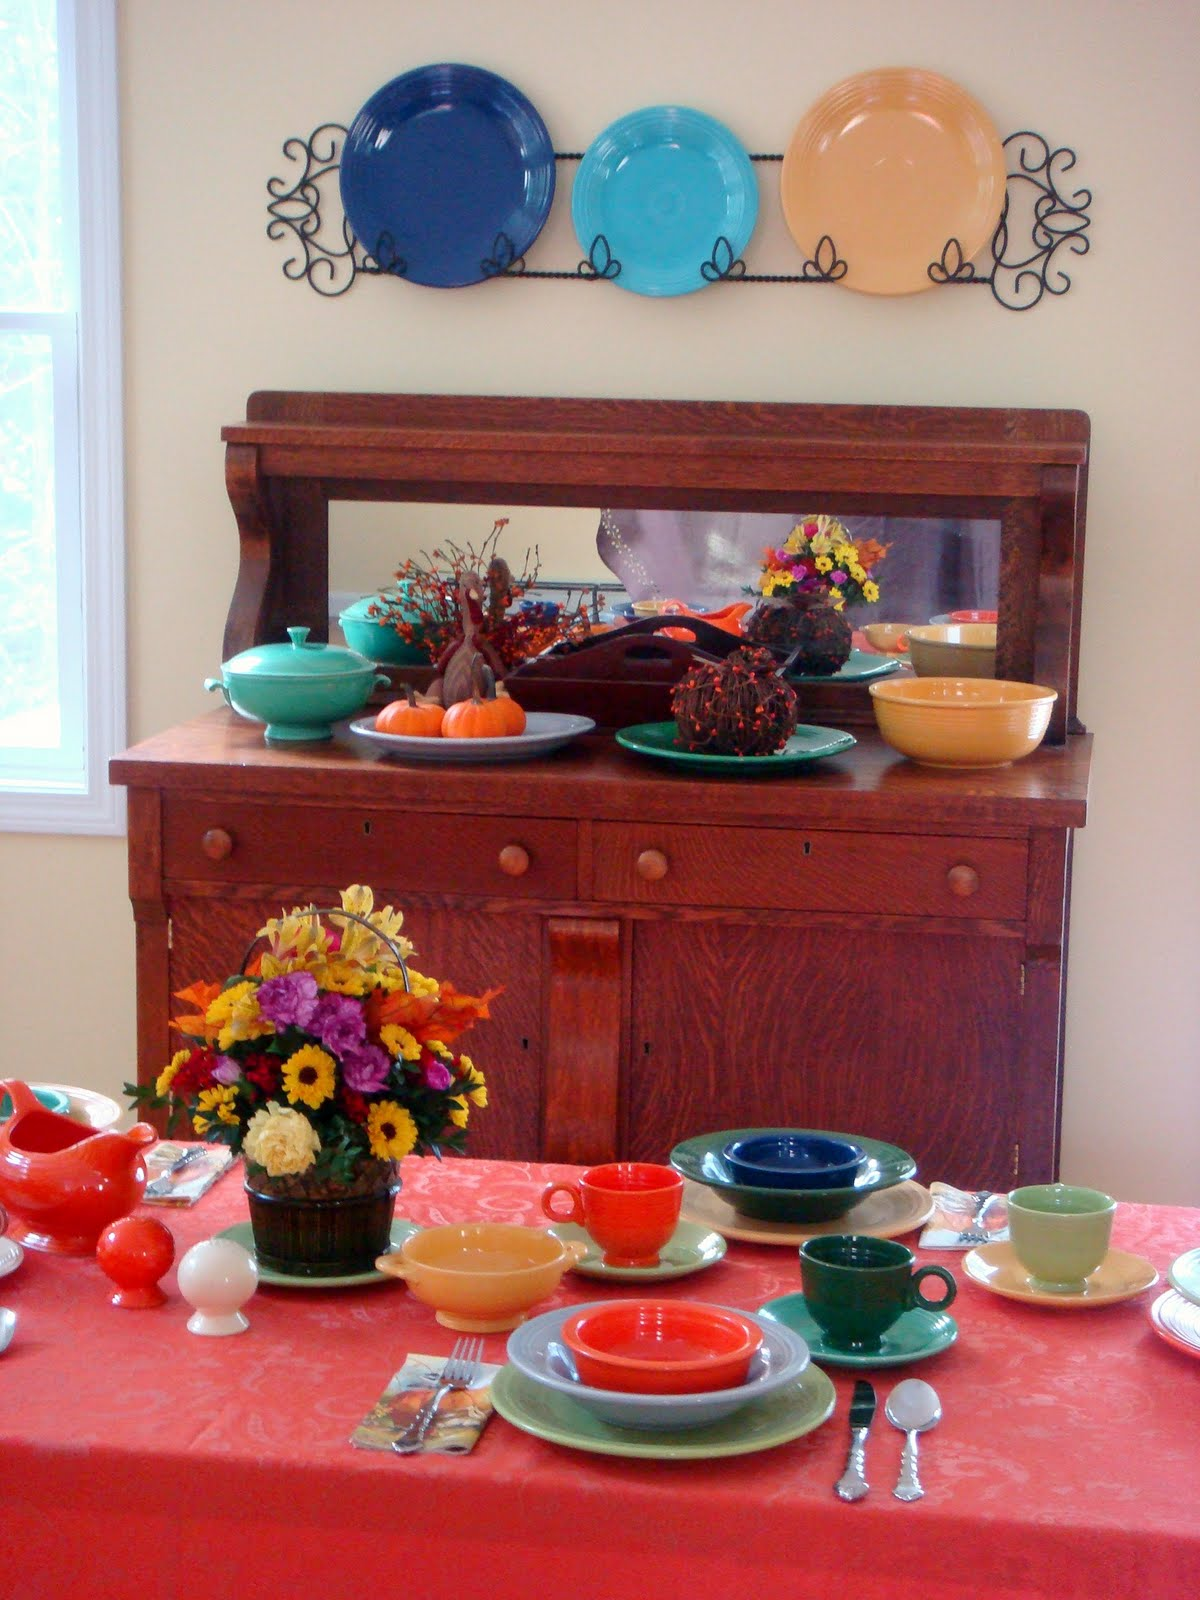 Awesome Collections Of Fiestaware For Dinnerware Ideas: Crafty Woman Fiestaware Thanksgiving Table Setting For Dinner Idesa